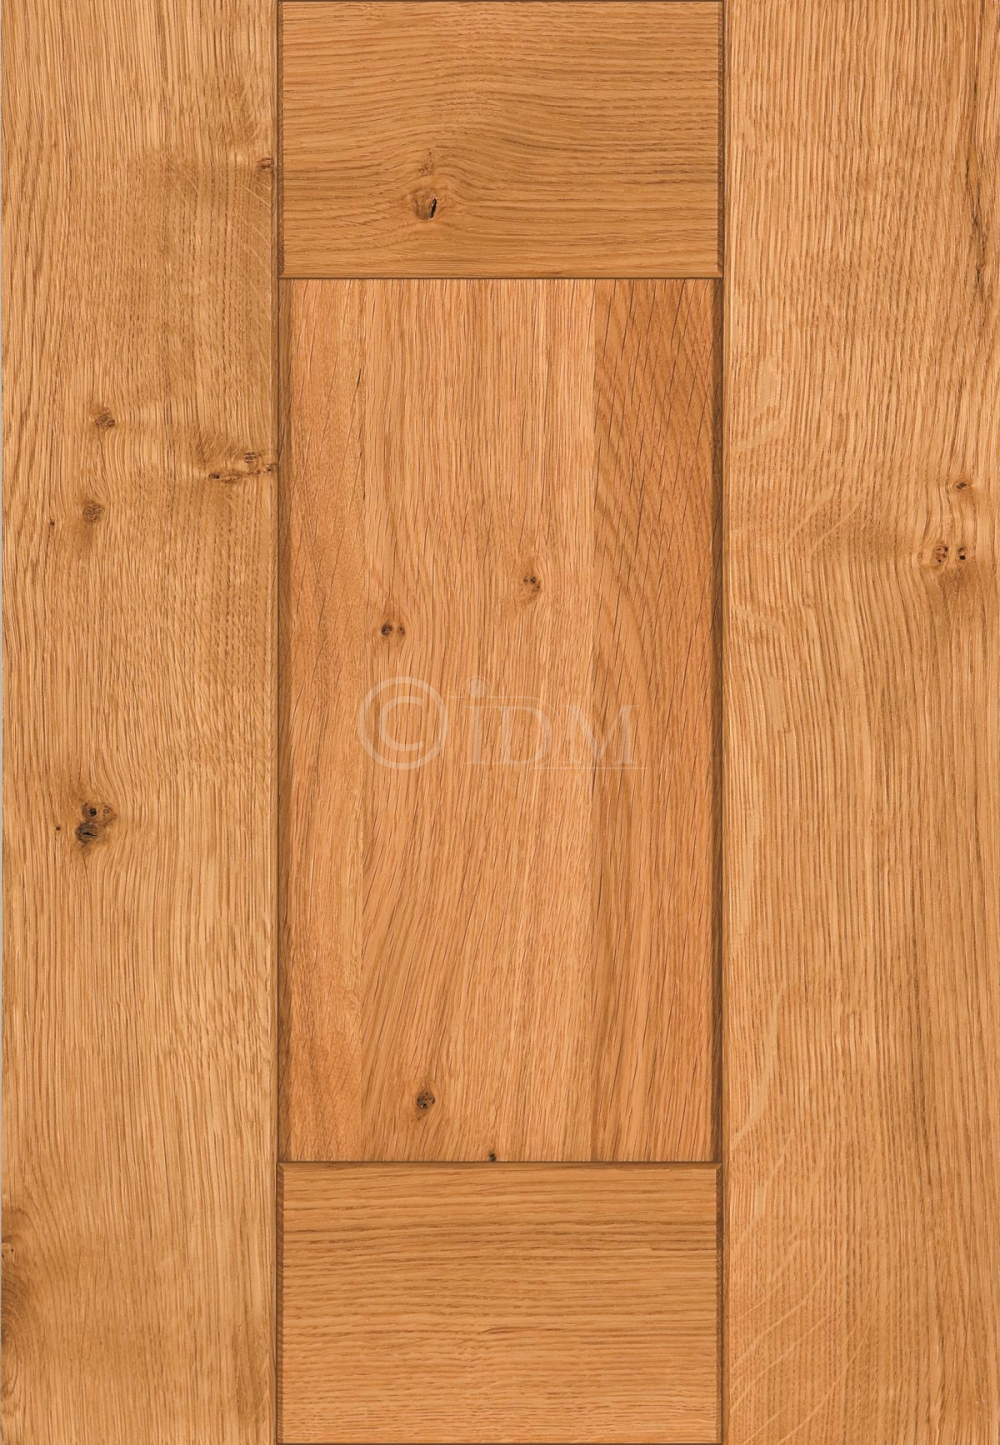 30mm Thick Doors & Irelands largest range of 100% Solid Wood cabinet doors. Solid wood ...